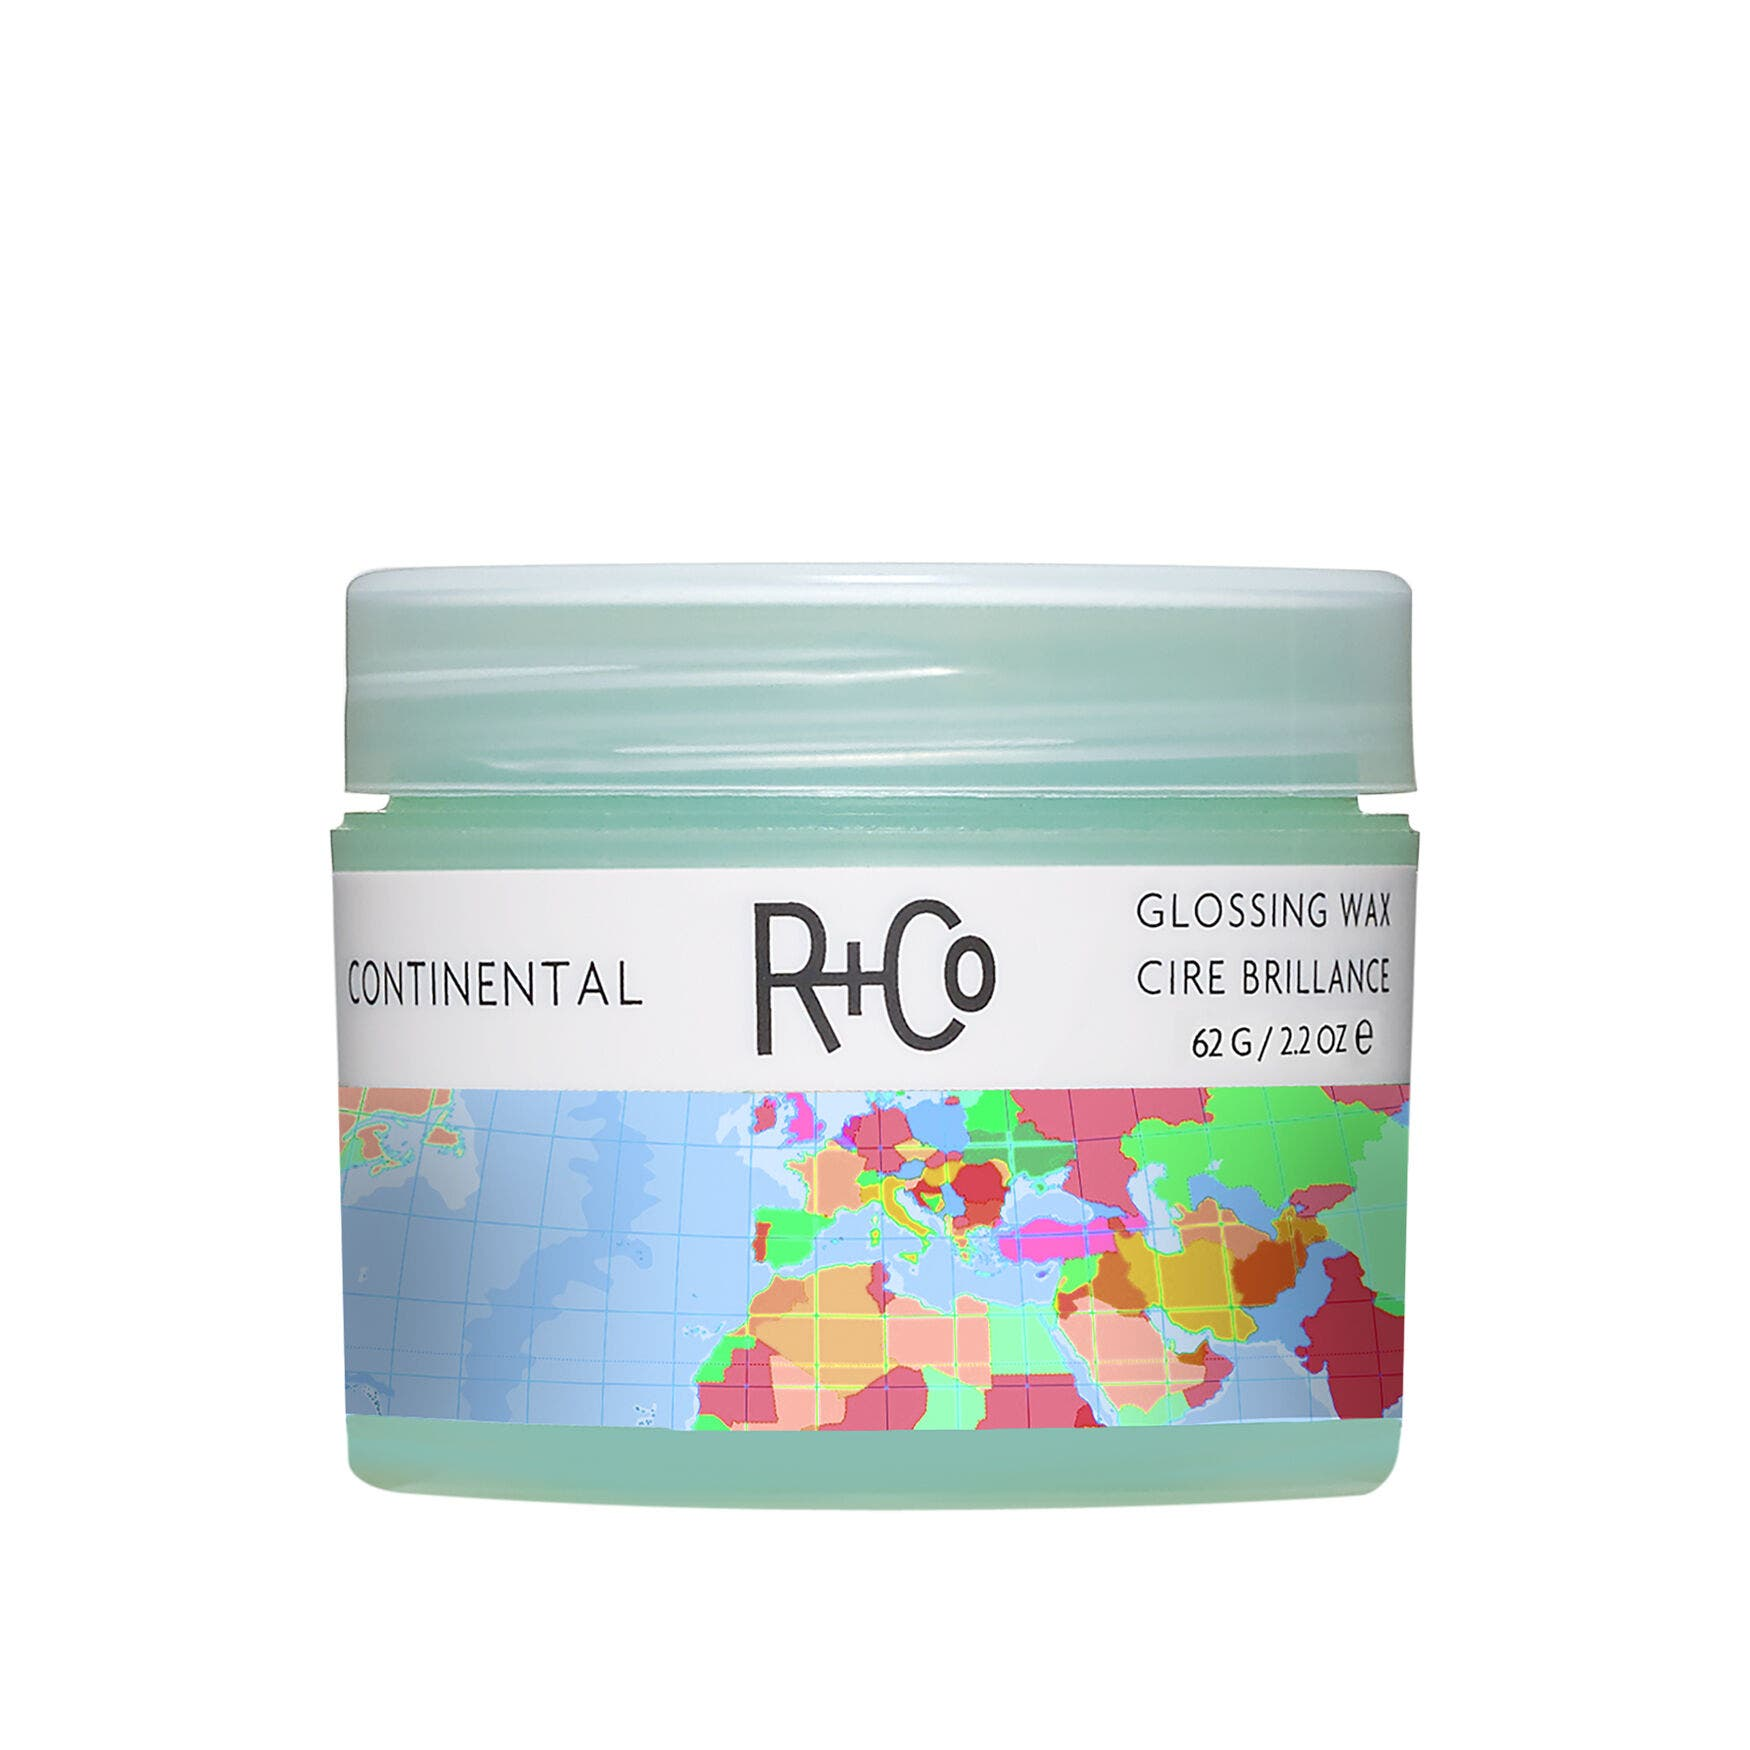 R+Co CONTINENTAL Glossing Wax